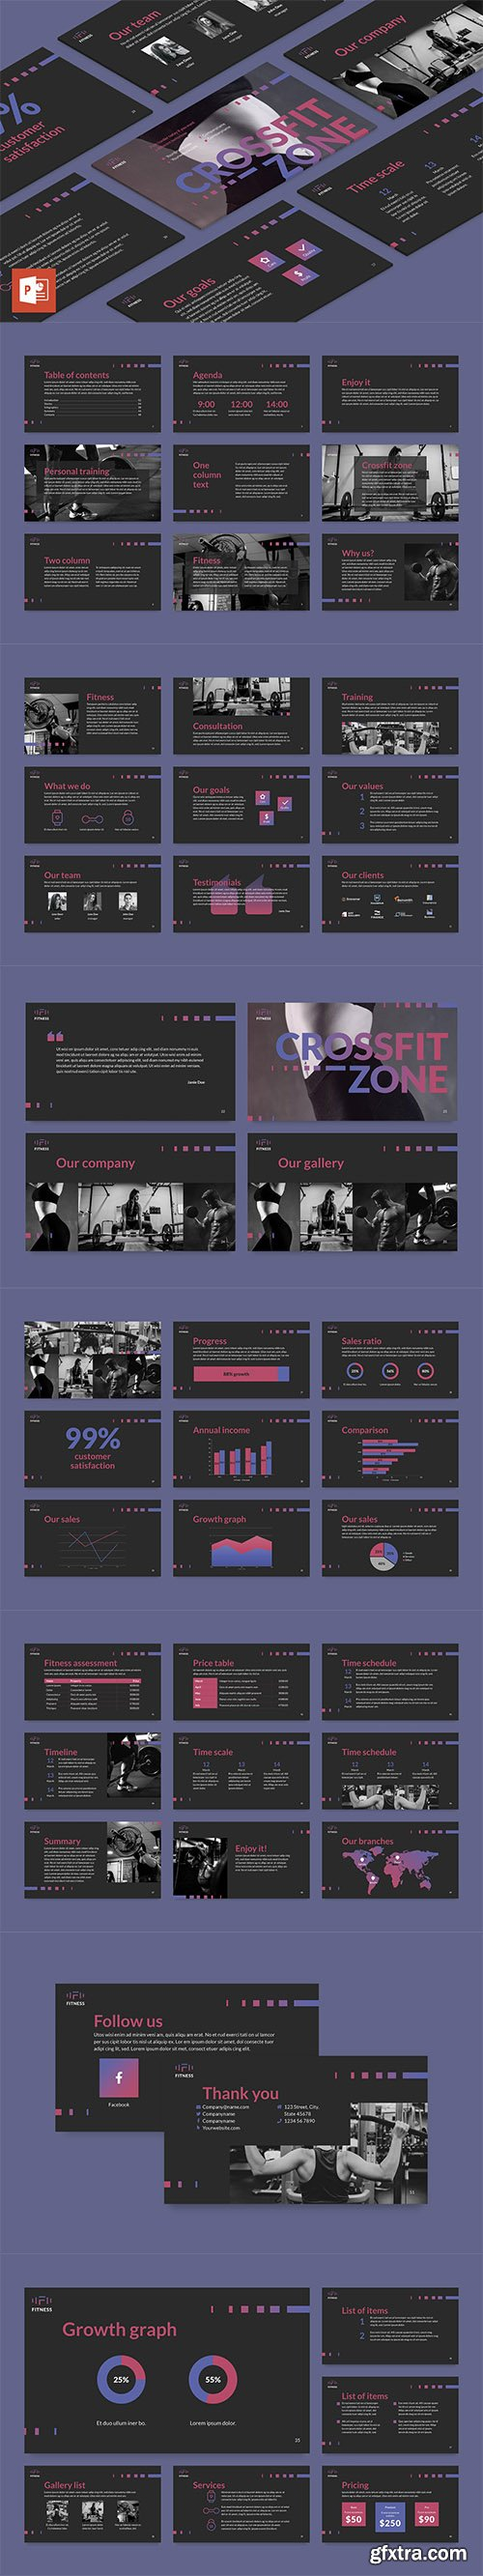 Fitness Studio PowerPoint Presentation Template